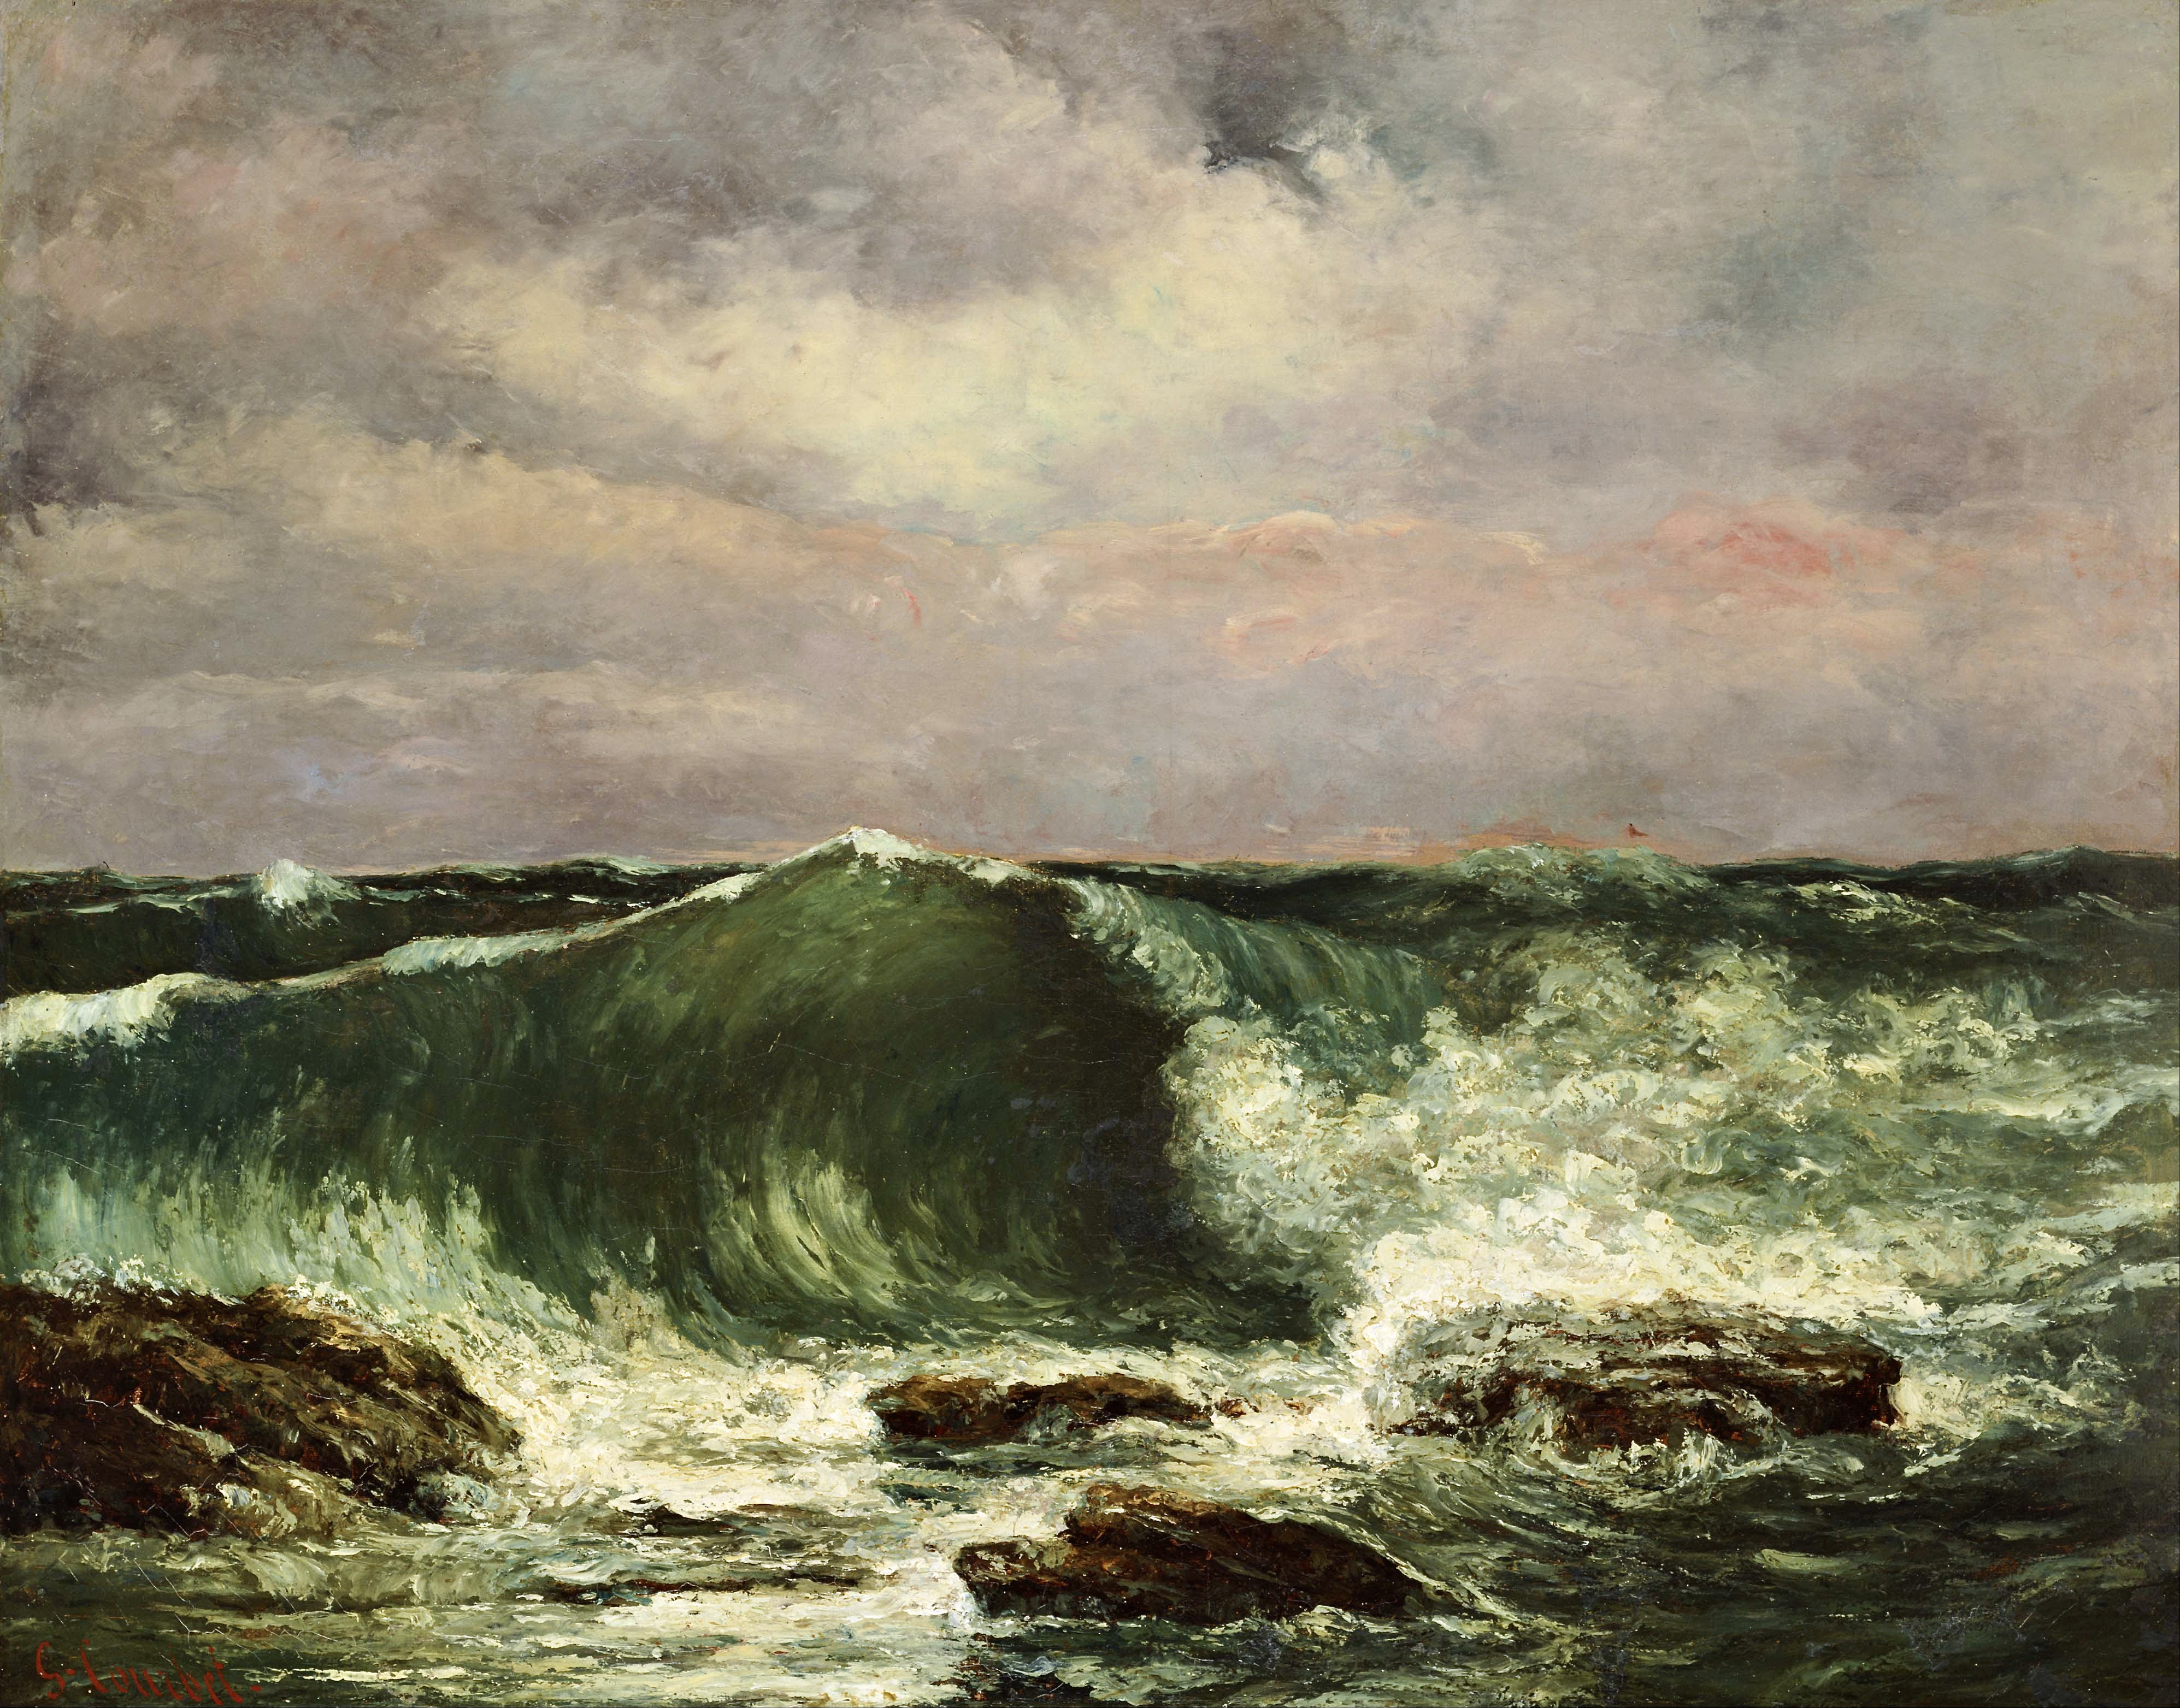 Gustave_Courbet_-_Waves_-_Google_Art_Project